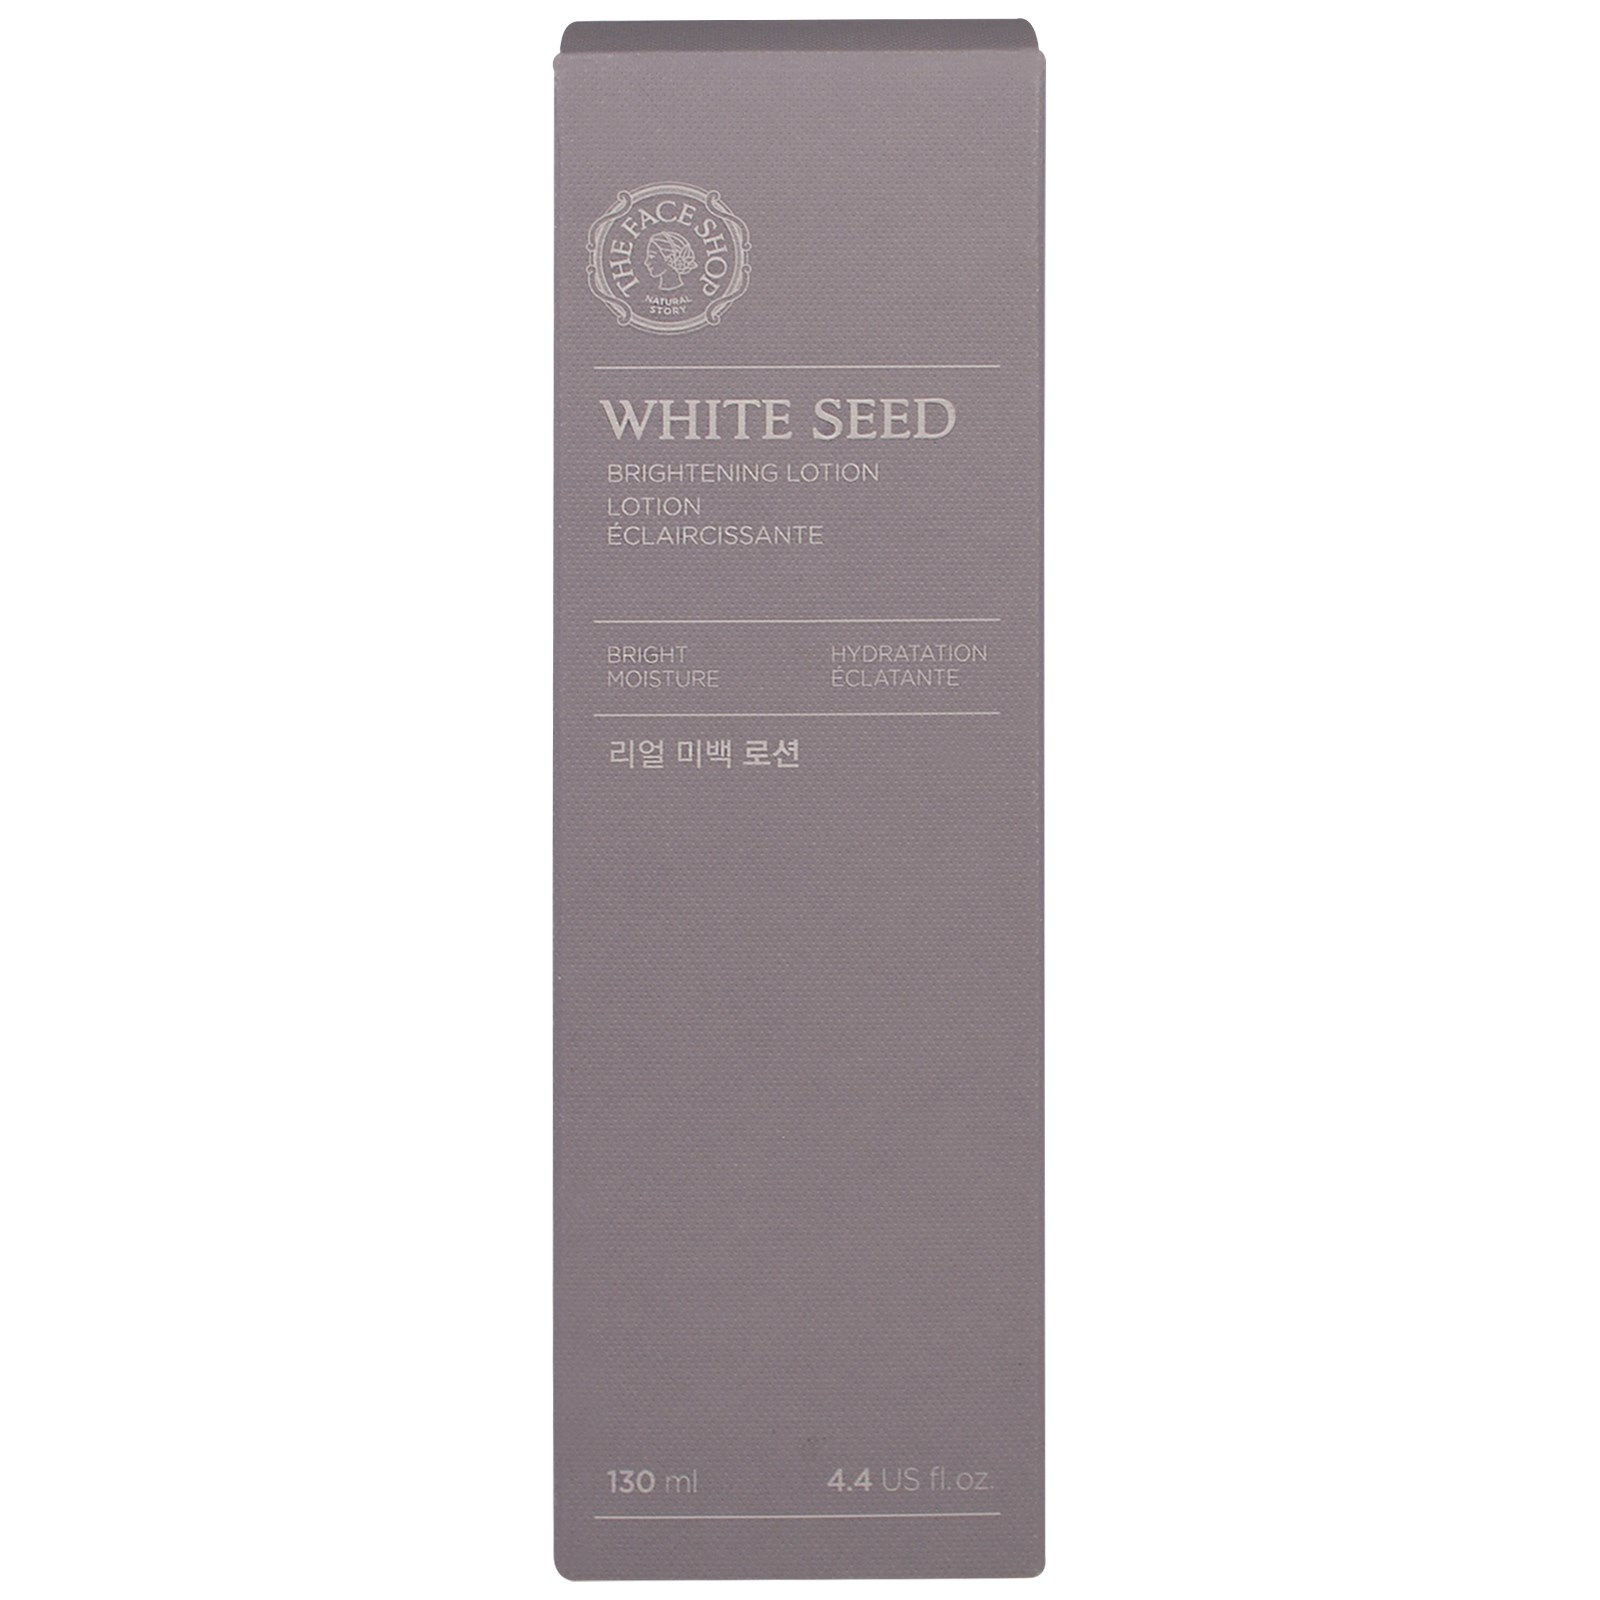 The Face Shop, White Seed, Brightening Lotion, 4.4 Fl Oz